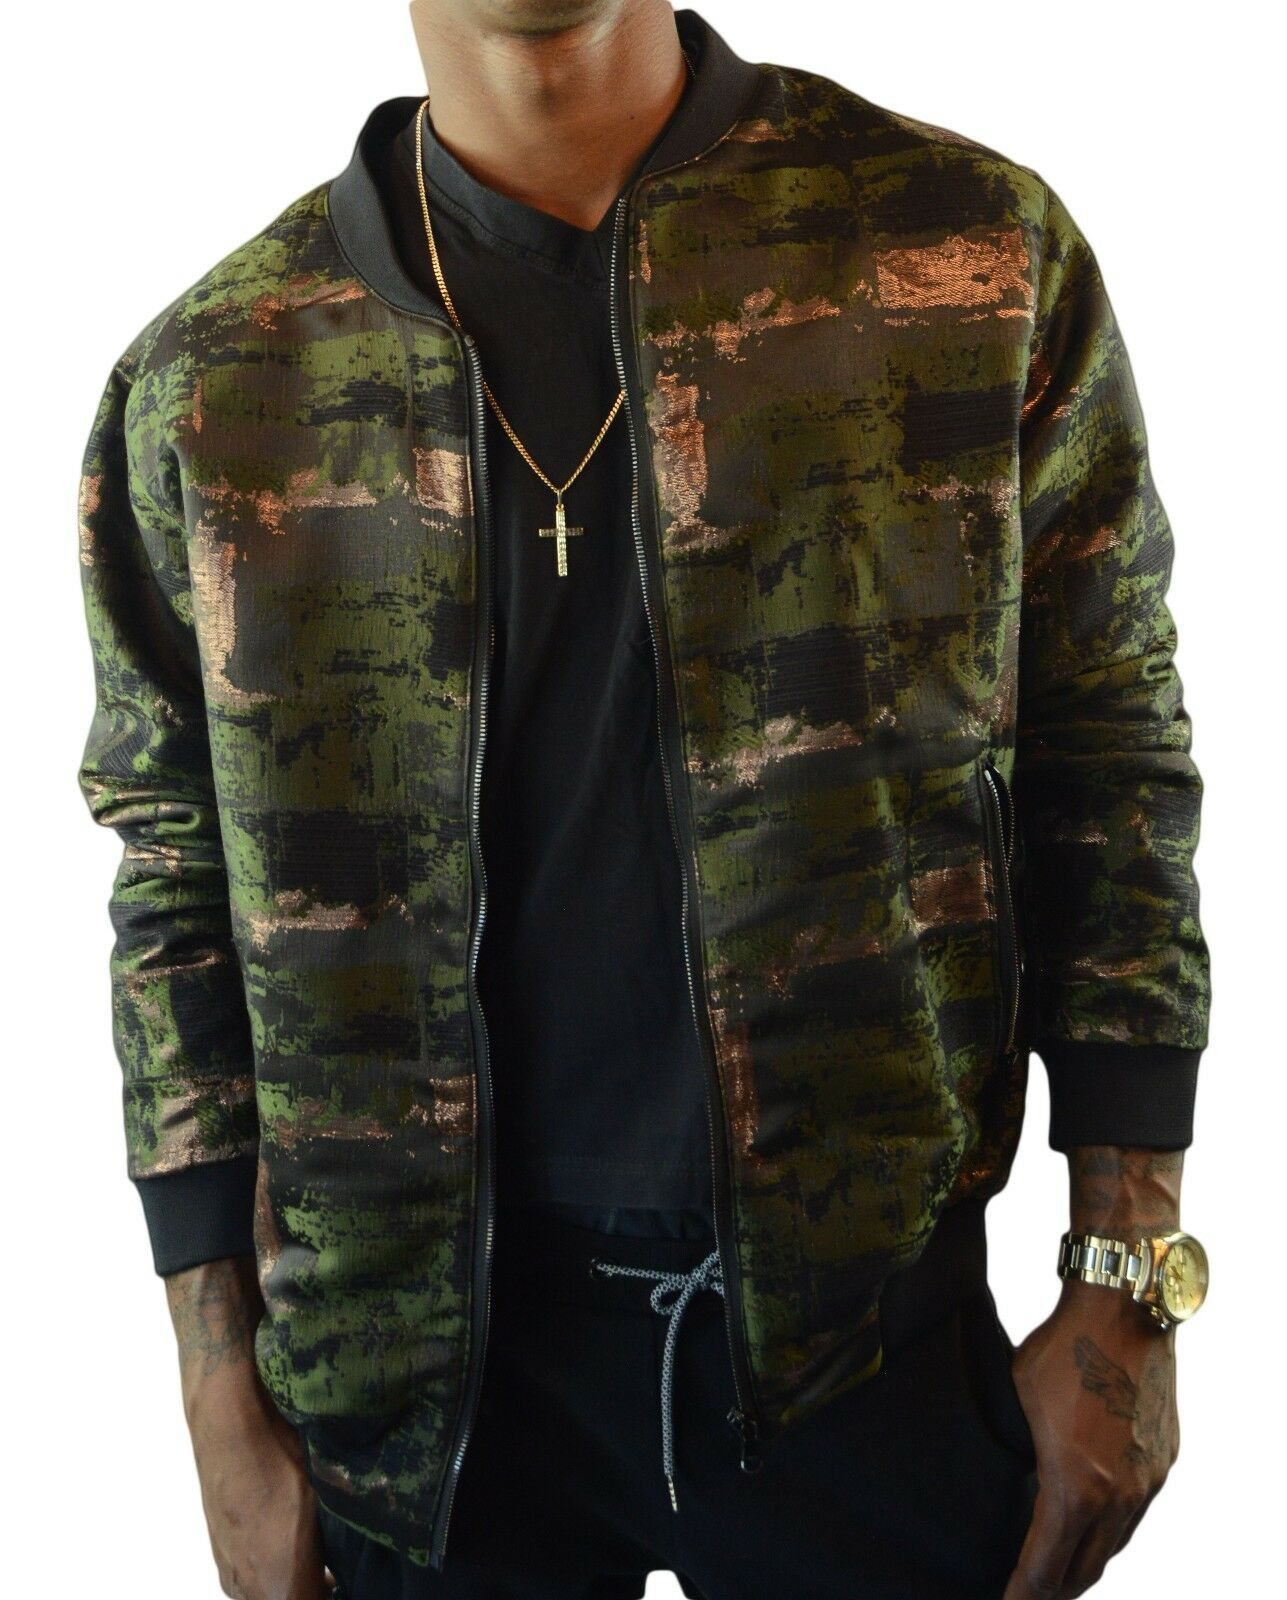 Green Copper Jaquard Bomber - Size Large